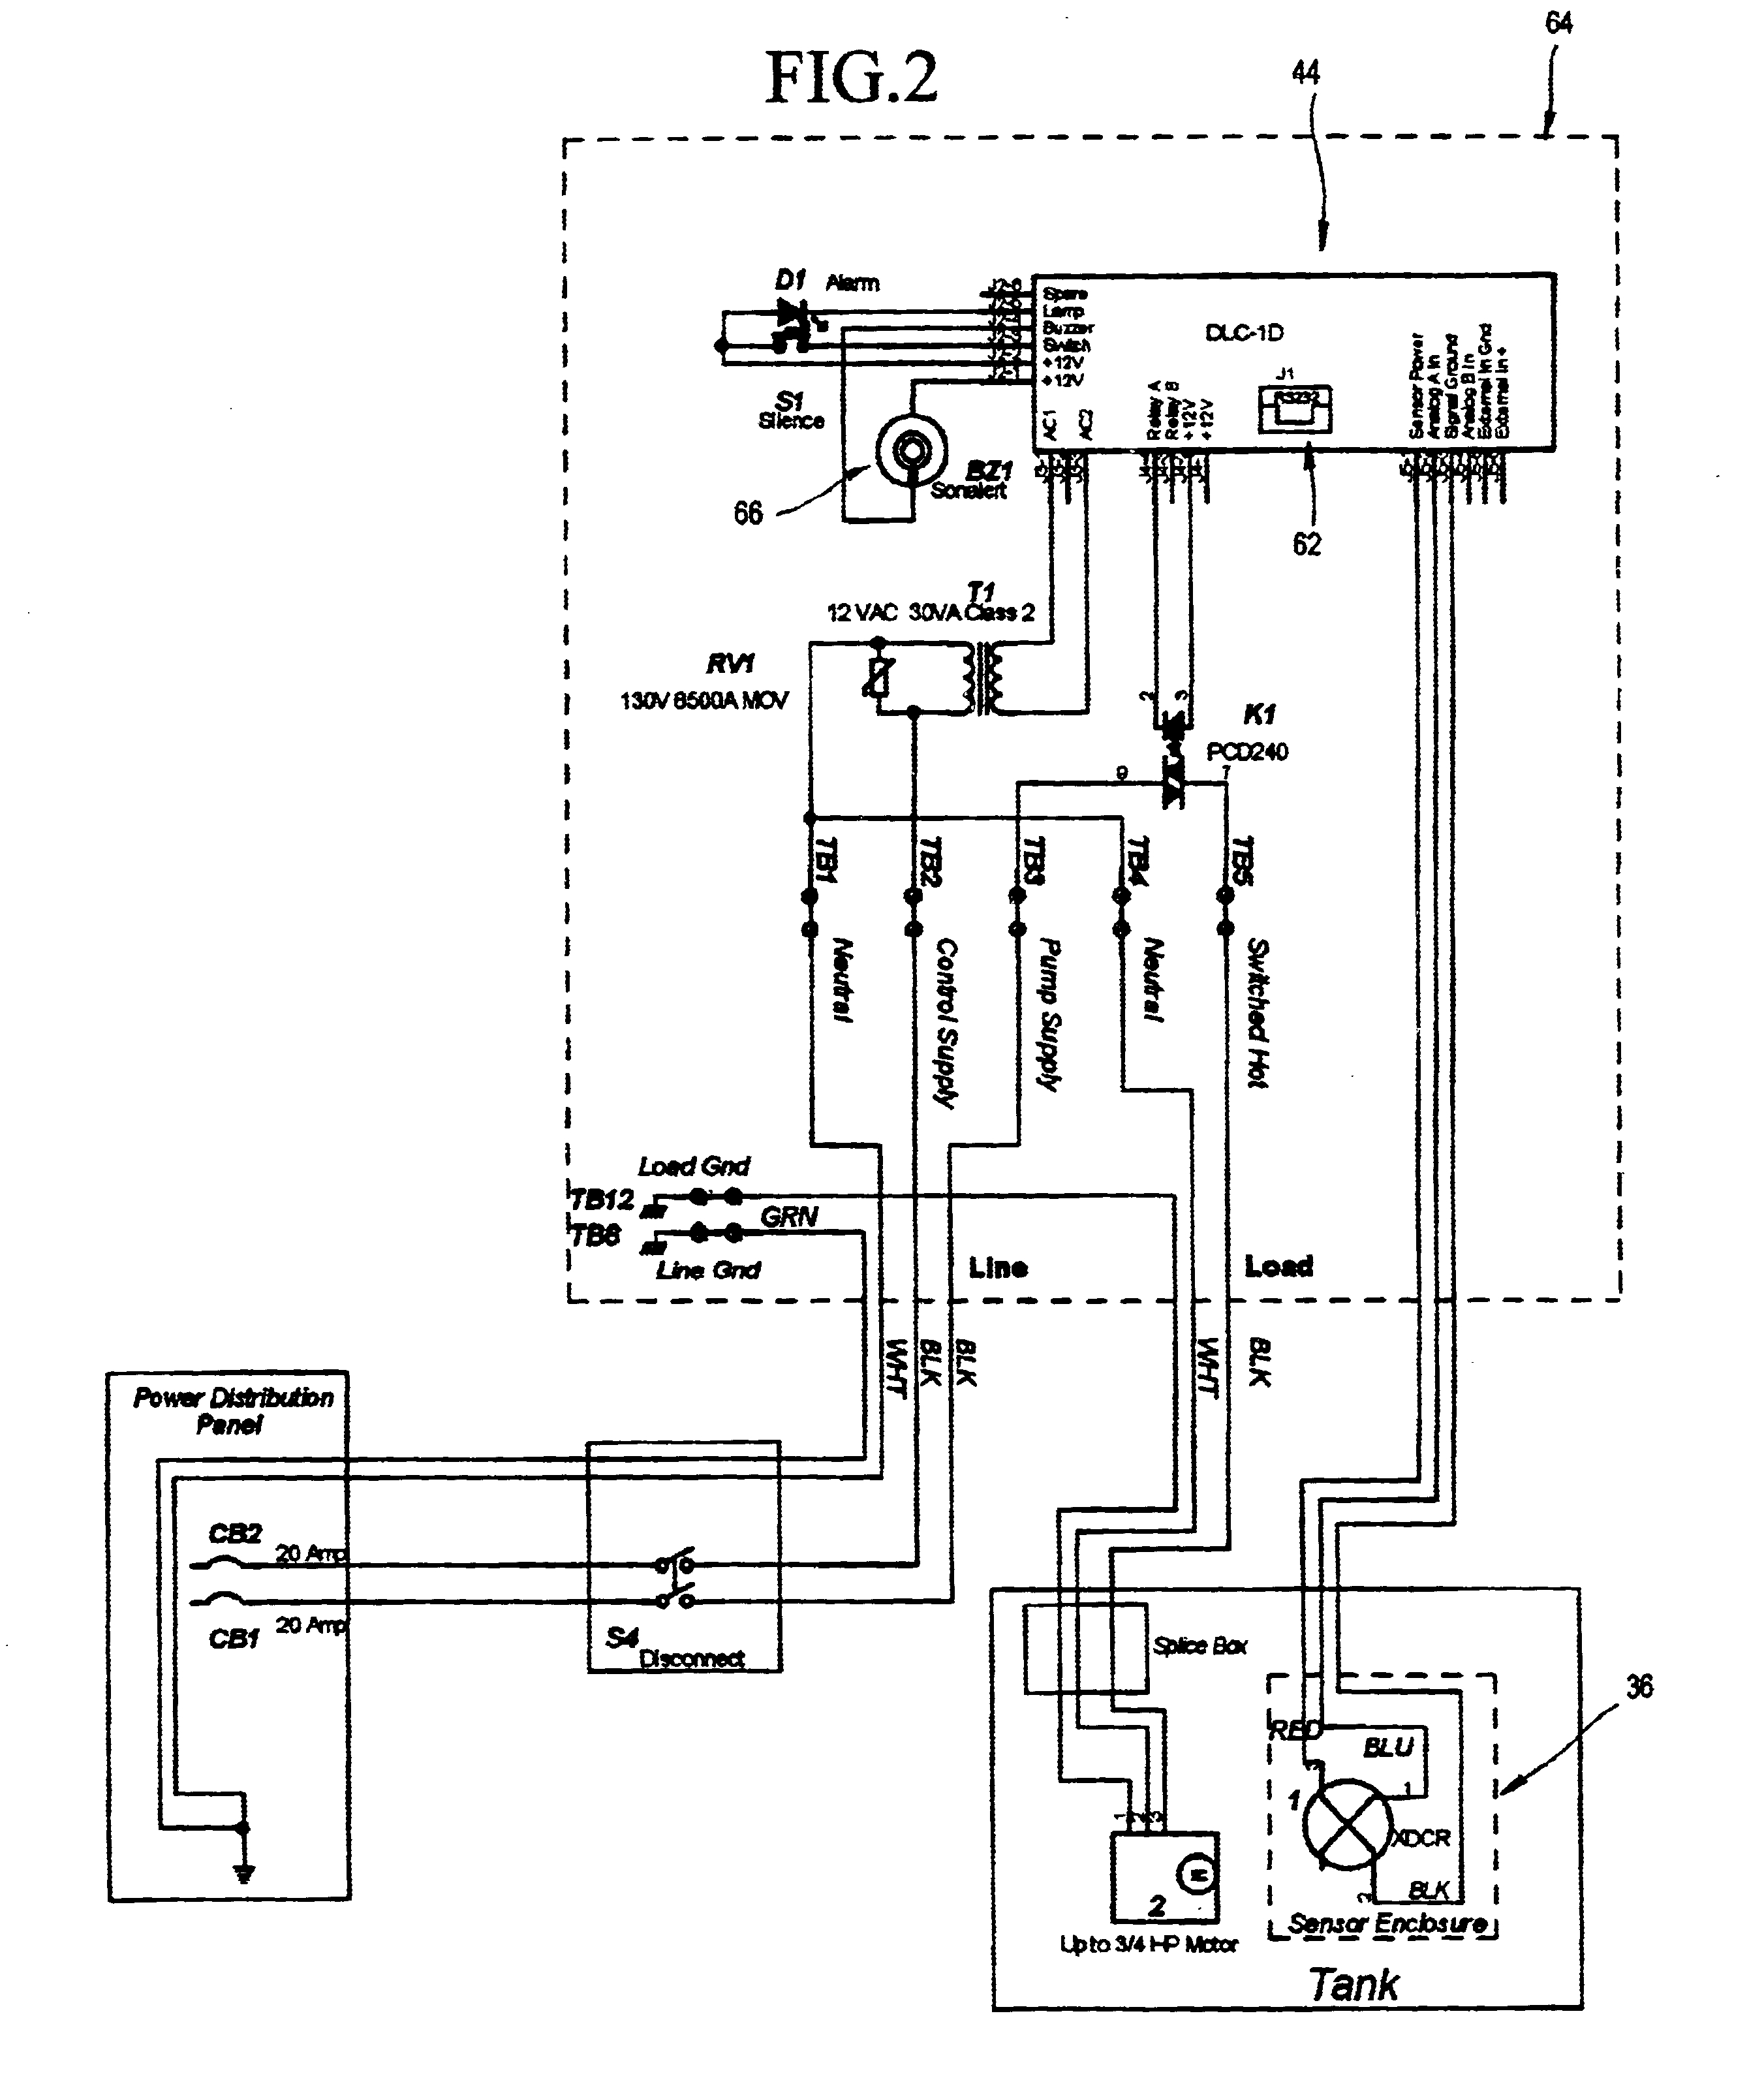 Sump Pump Float Switch Wiring Diagram Gallery